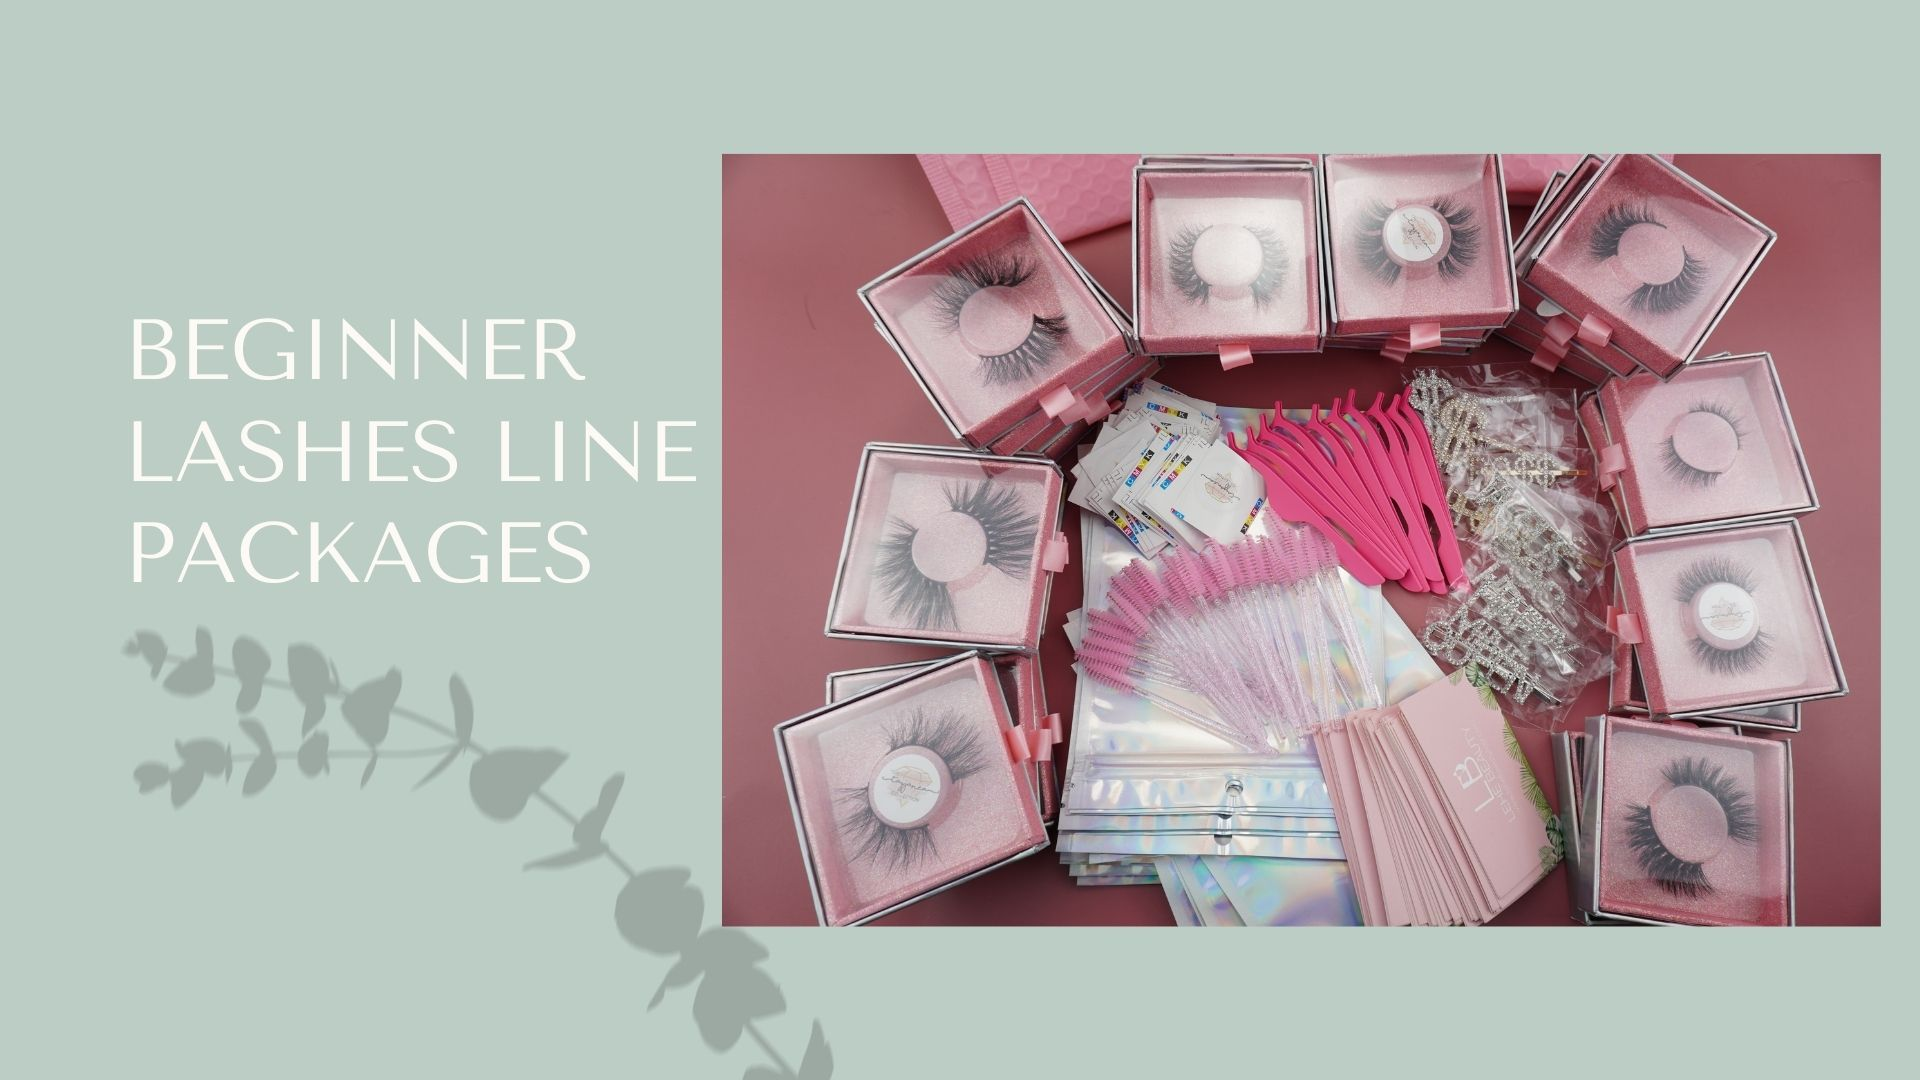 Beginner Lashes Line Packages